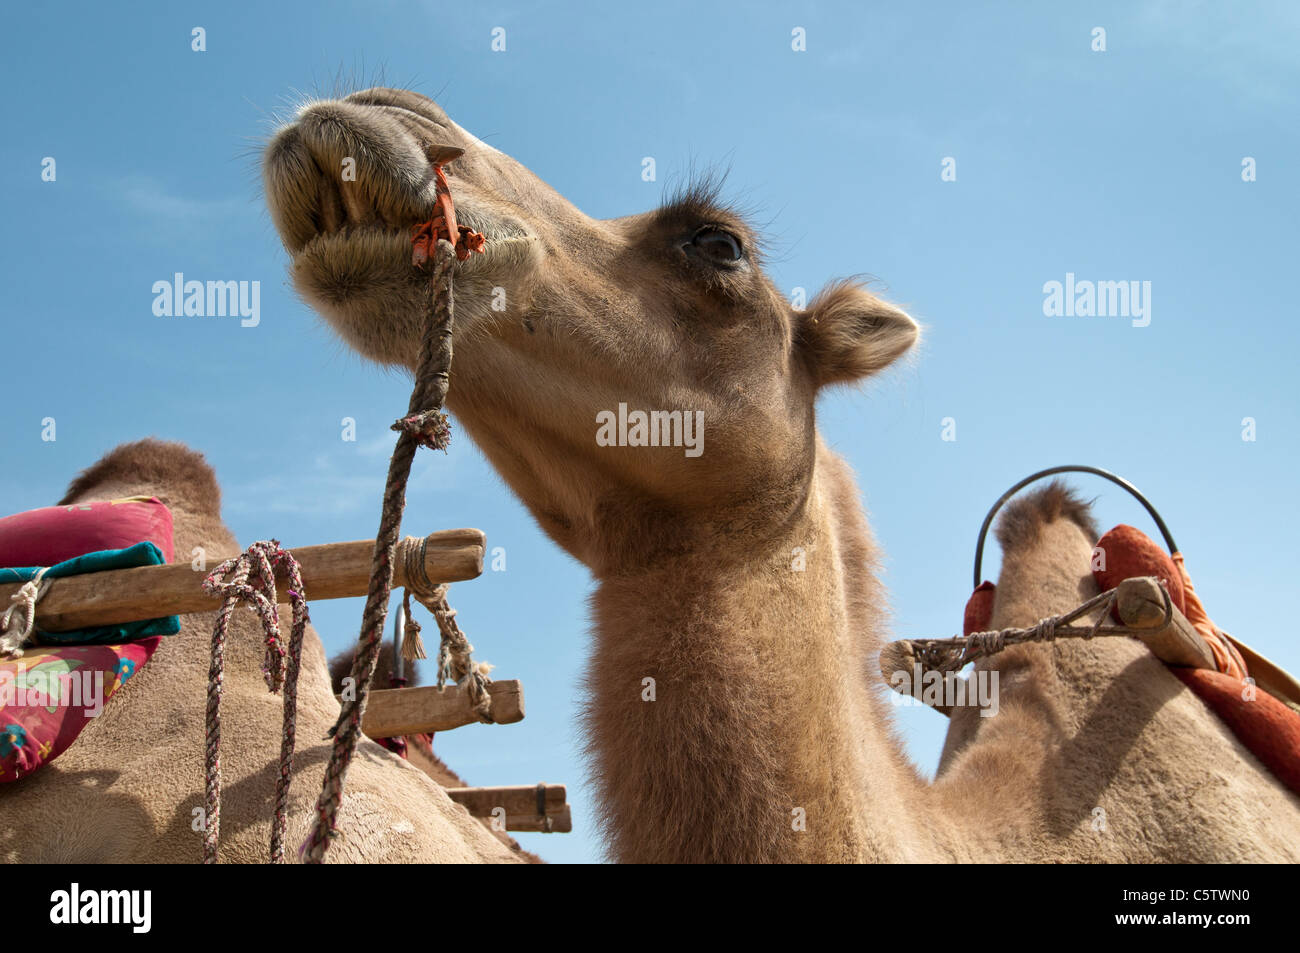 Camel waits for return of Chinese tourist it carried up the Mingsha Sand Dunes, Dunhuang, Gansu Province, China - Stock Image